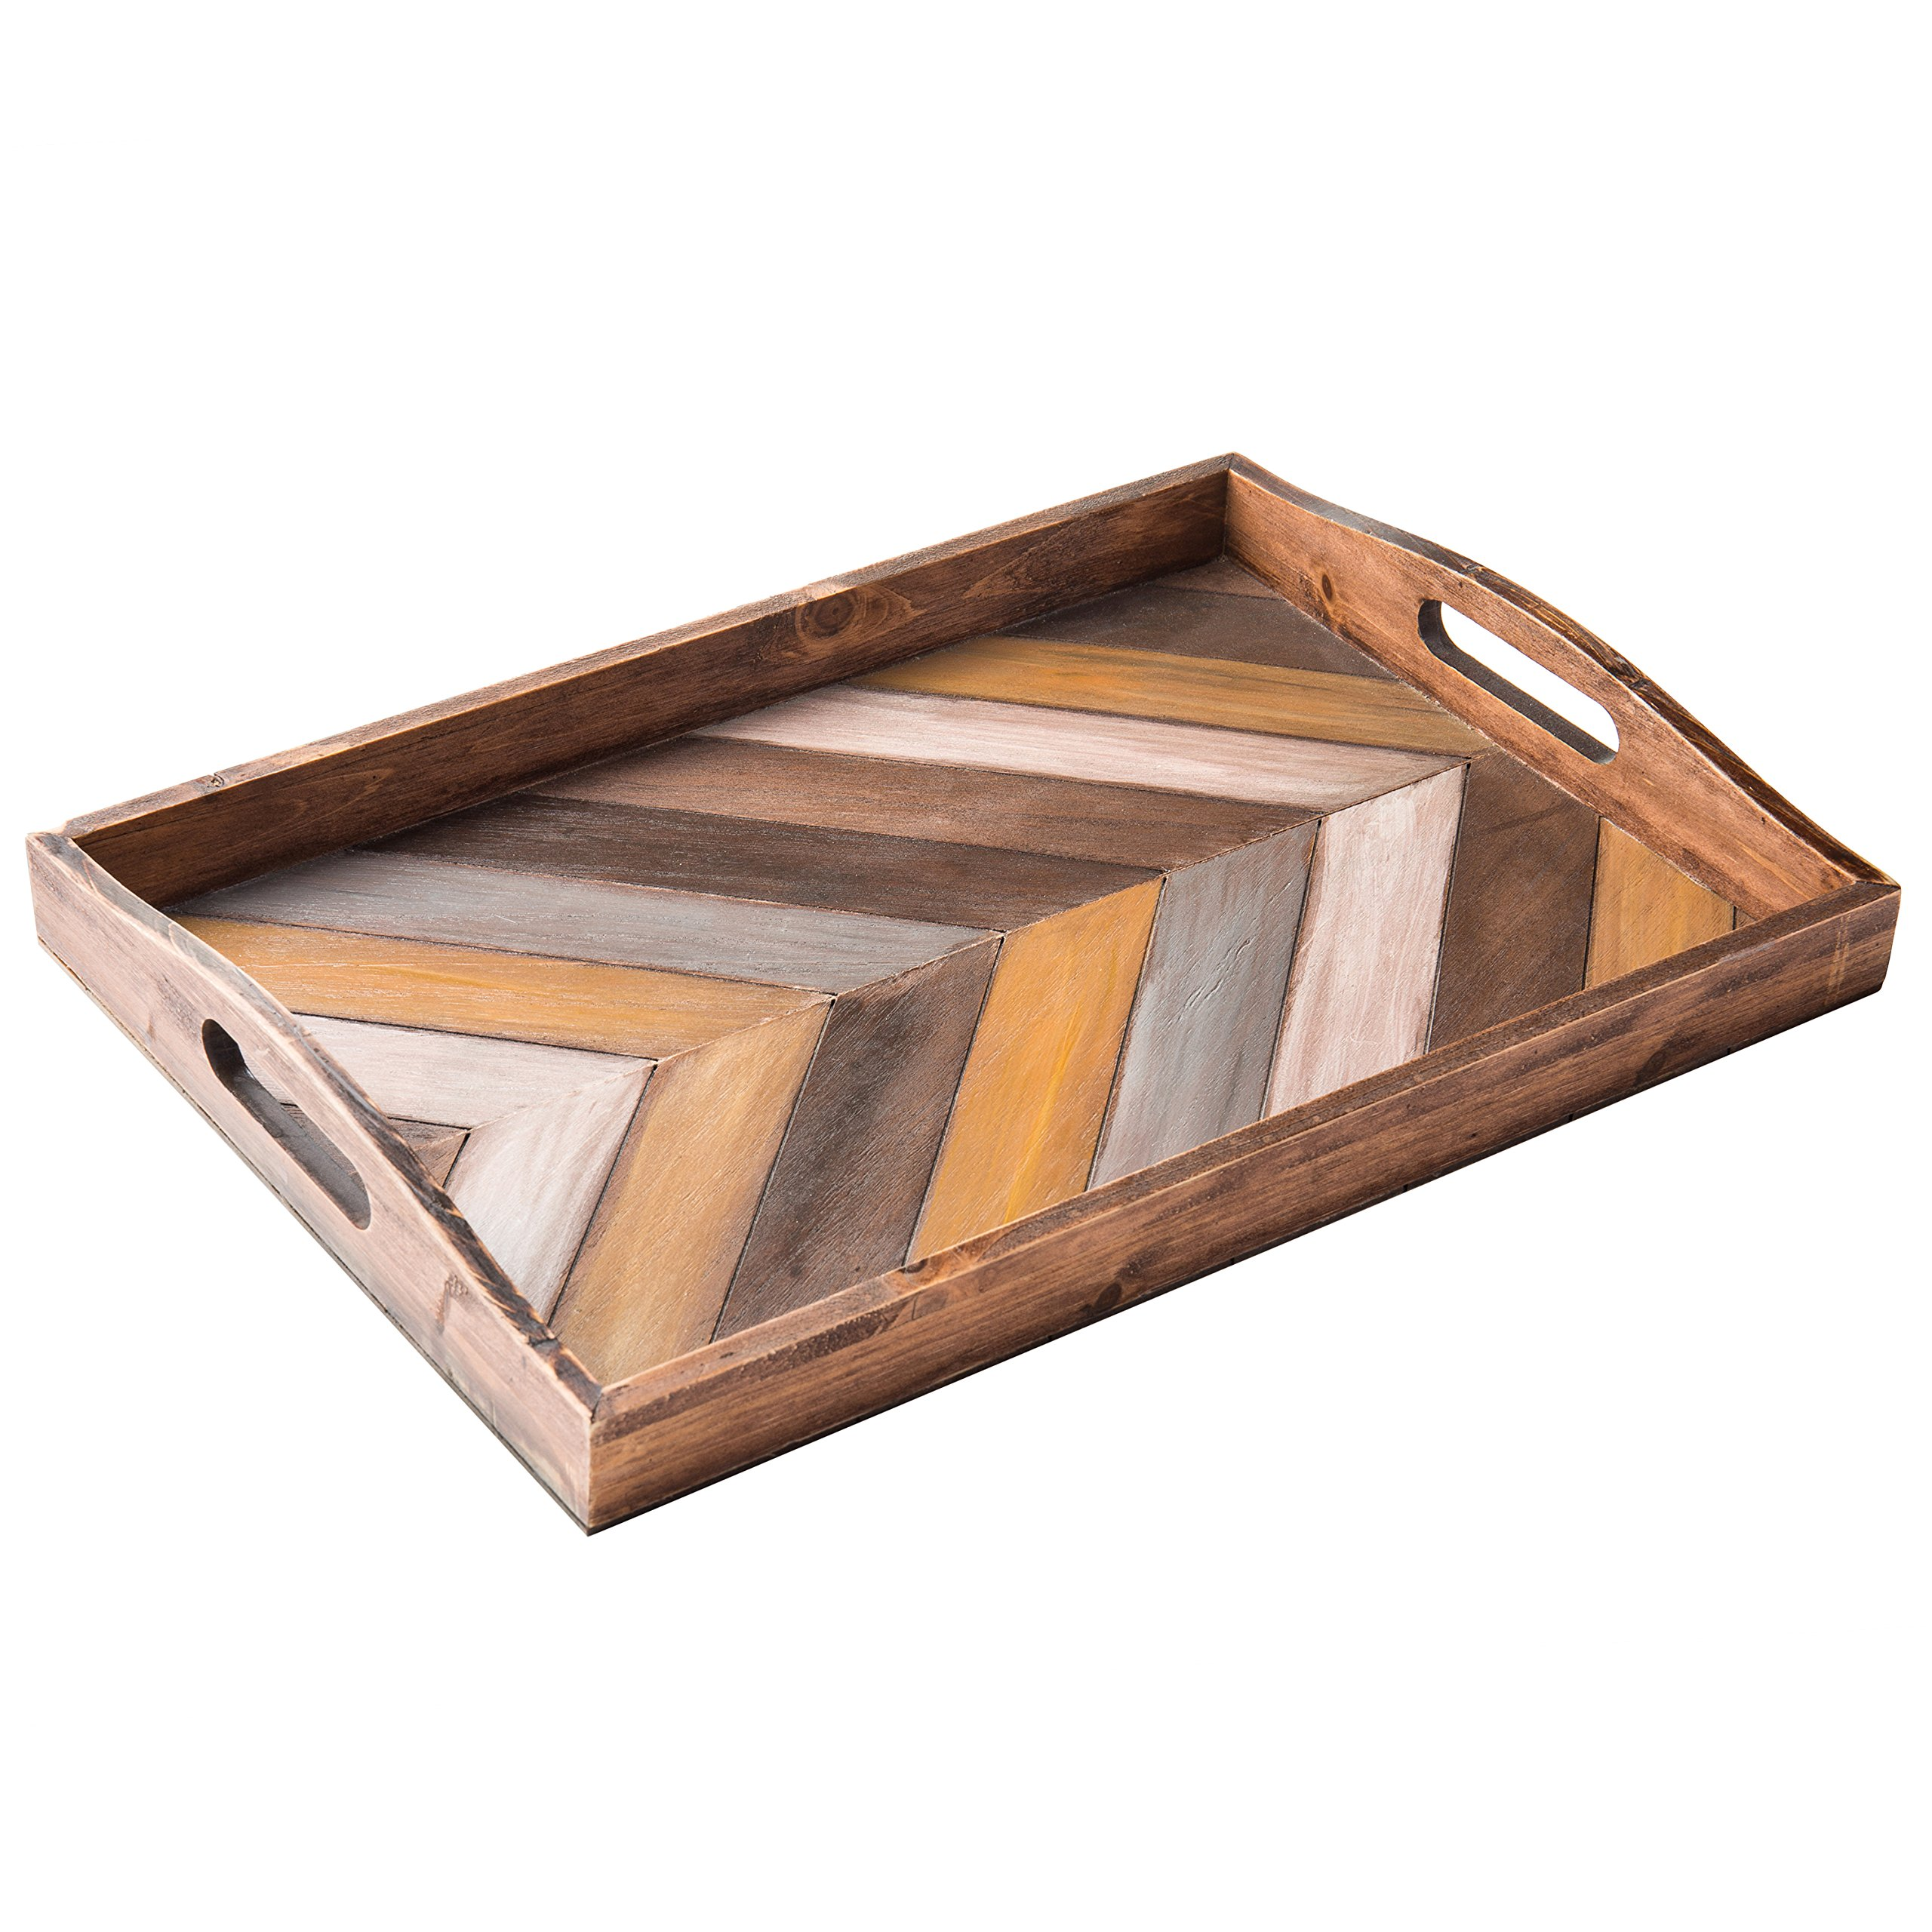 MyGift Rustic Chevron Rectangular Wood Breakfast Serving Tray with Cutout Handles - 16 x 12-Inch